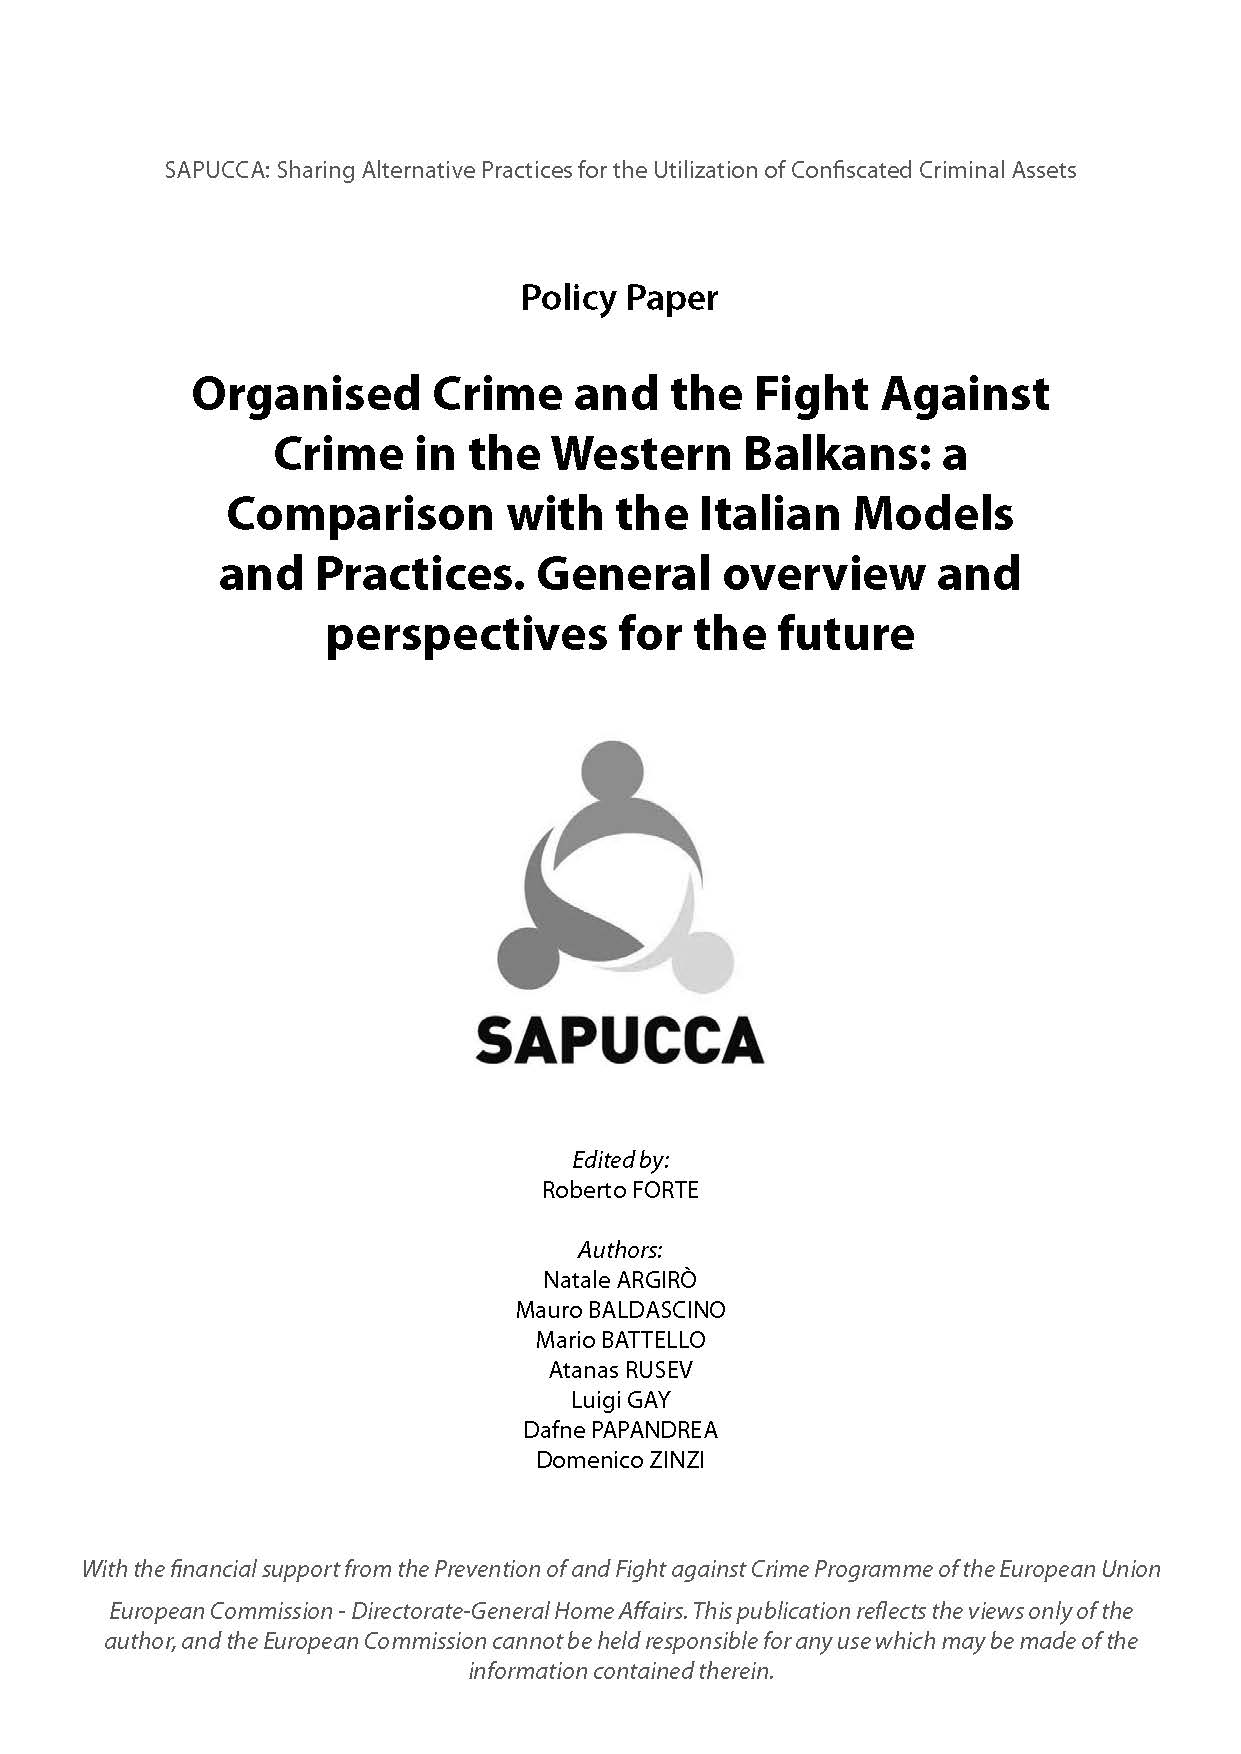 Organised Crime and the Fight Against Crime in the Western Balkans: a Comparison with the Italian Modelsand Practices. General overview and perspectives for the future Cover Image